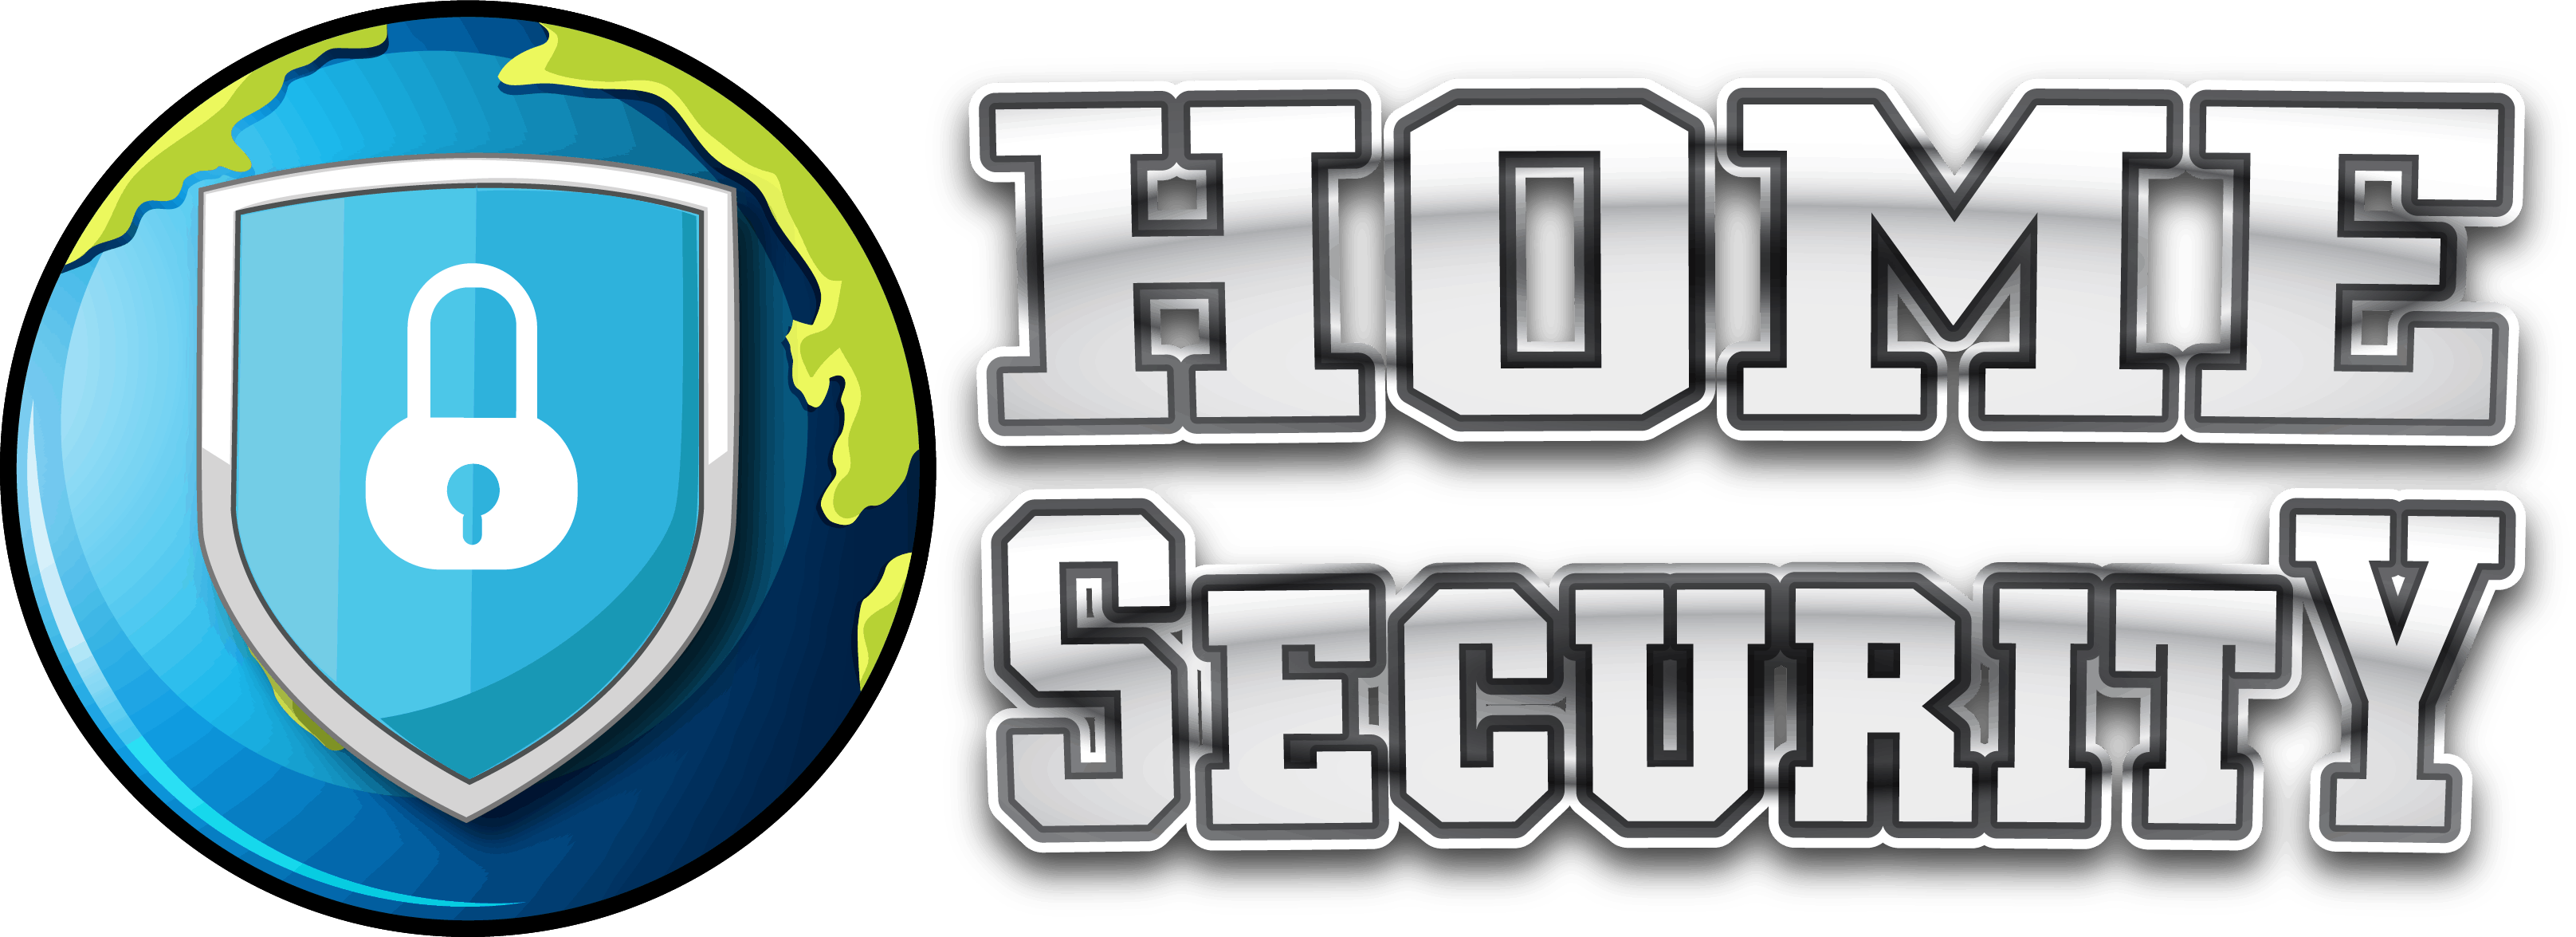 Home Security Planet